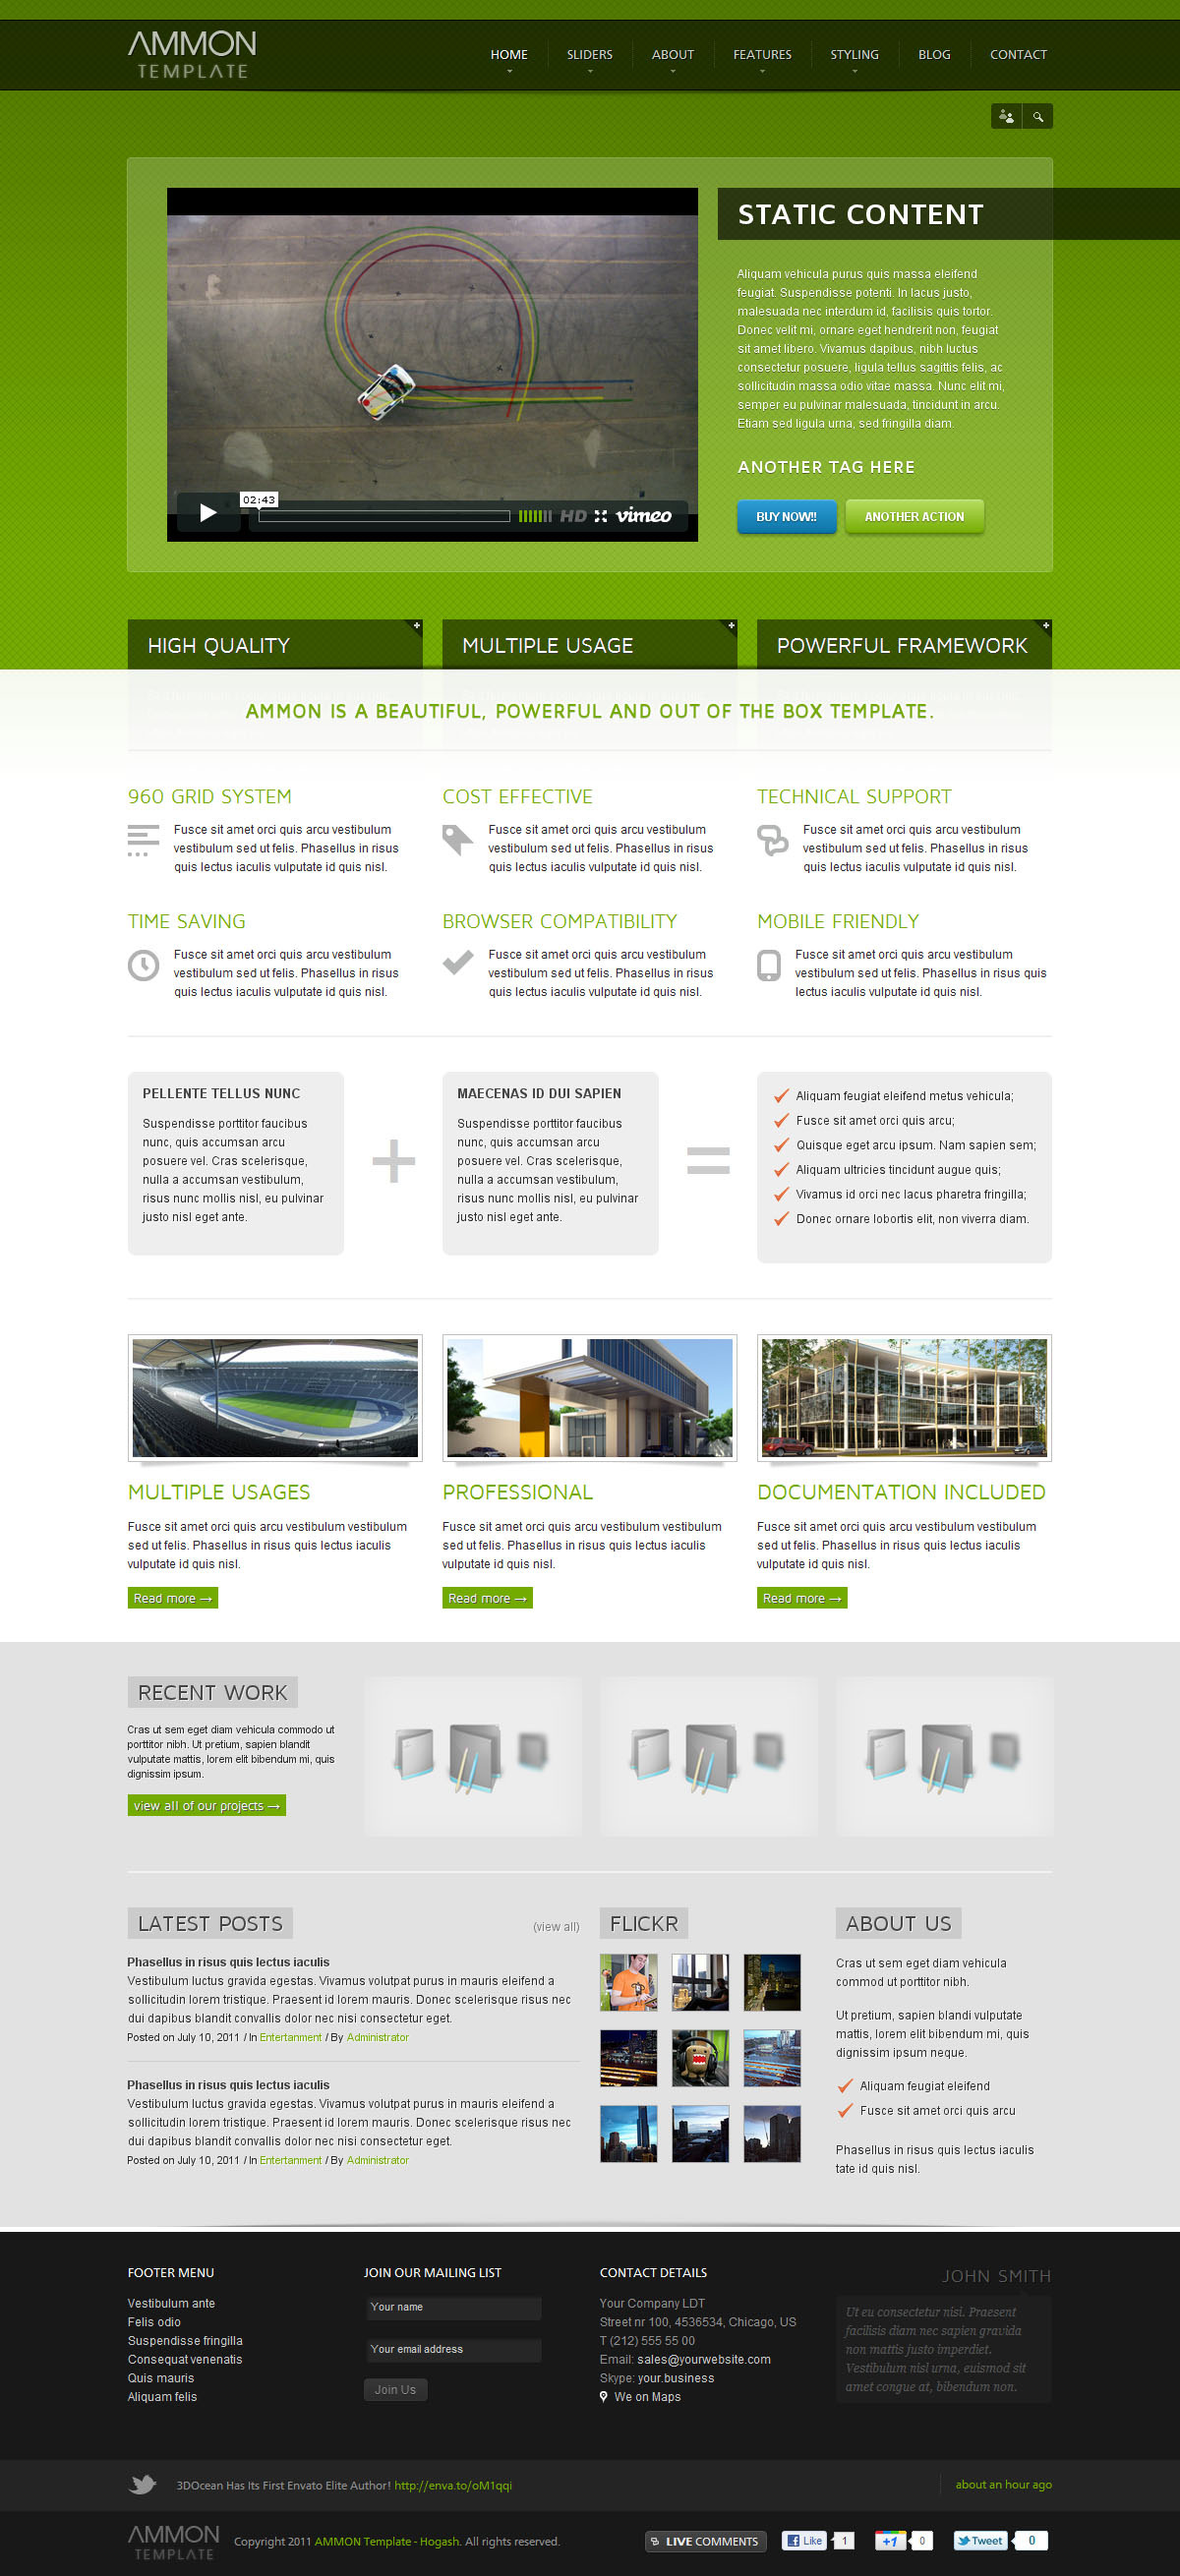 Ammon Responsive Template for Joomla - GENERAL PAGE - STATIC CONTENT